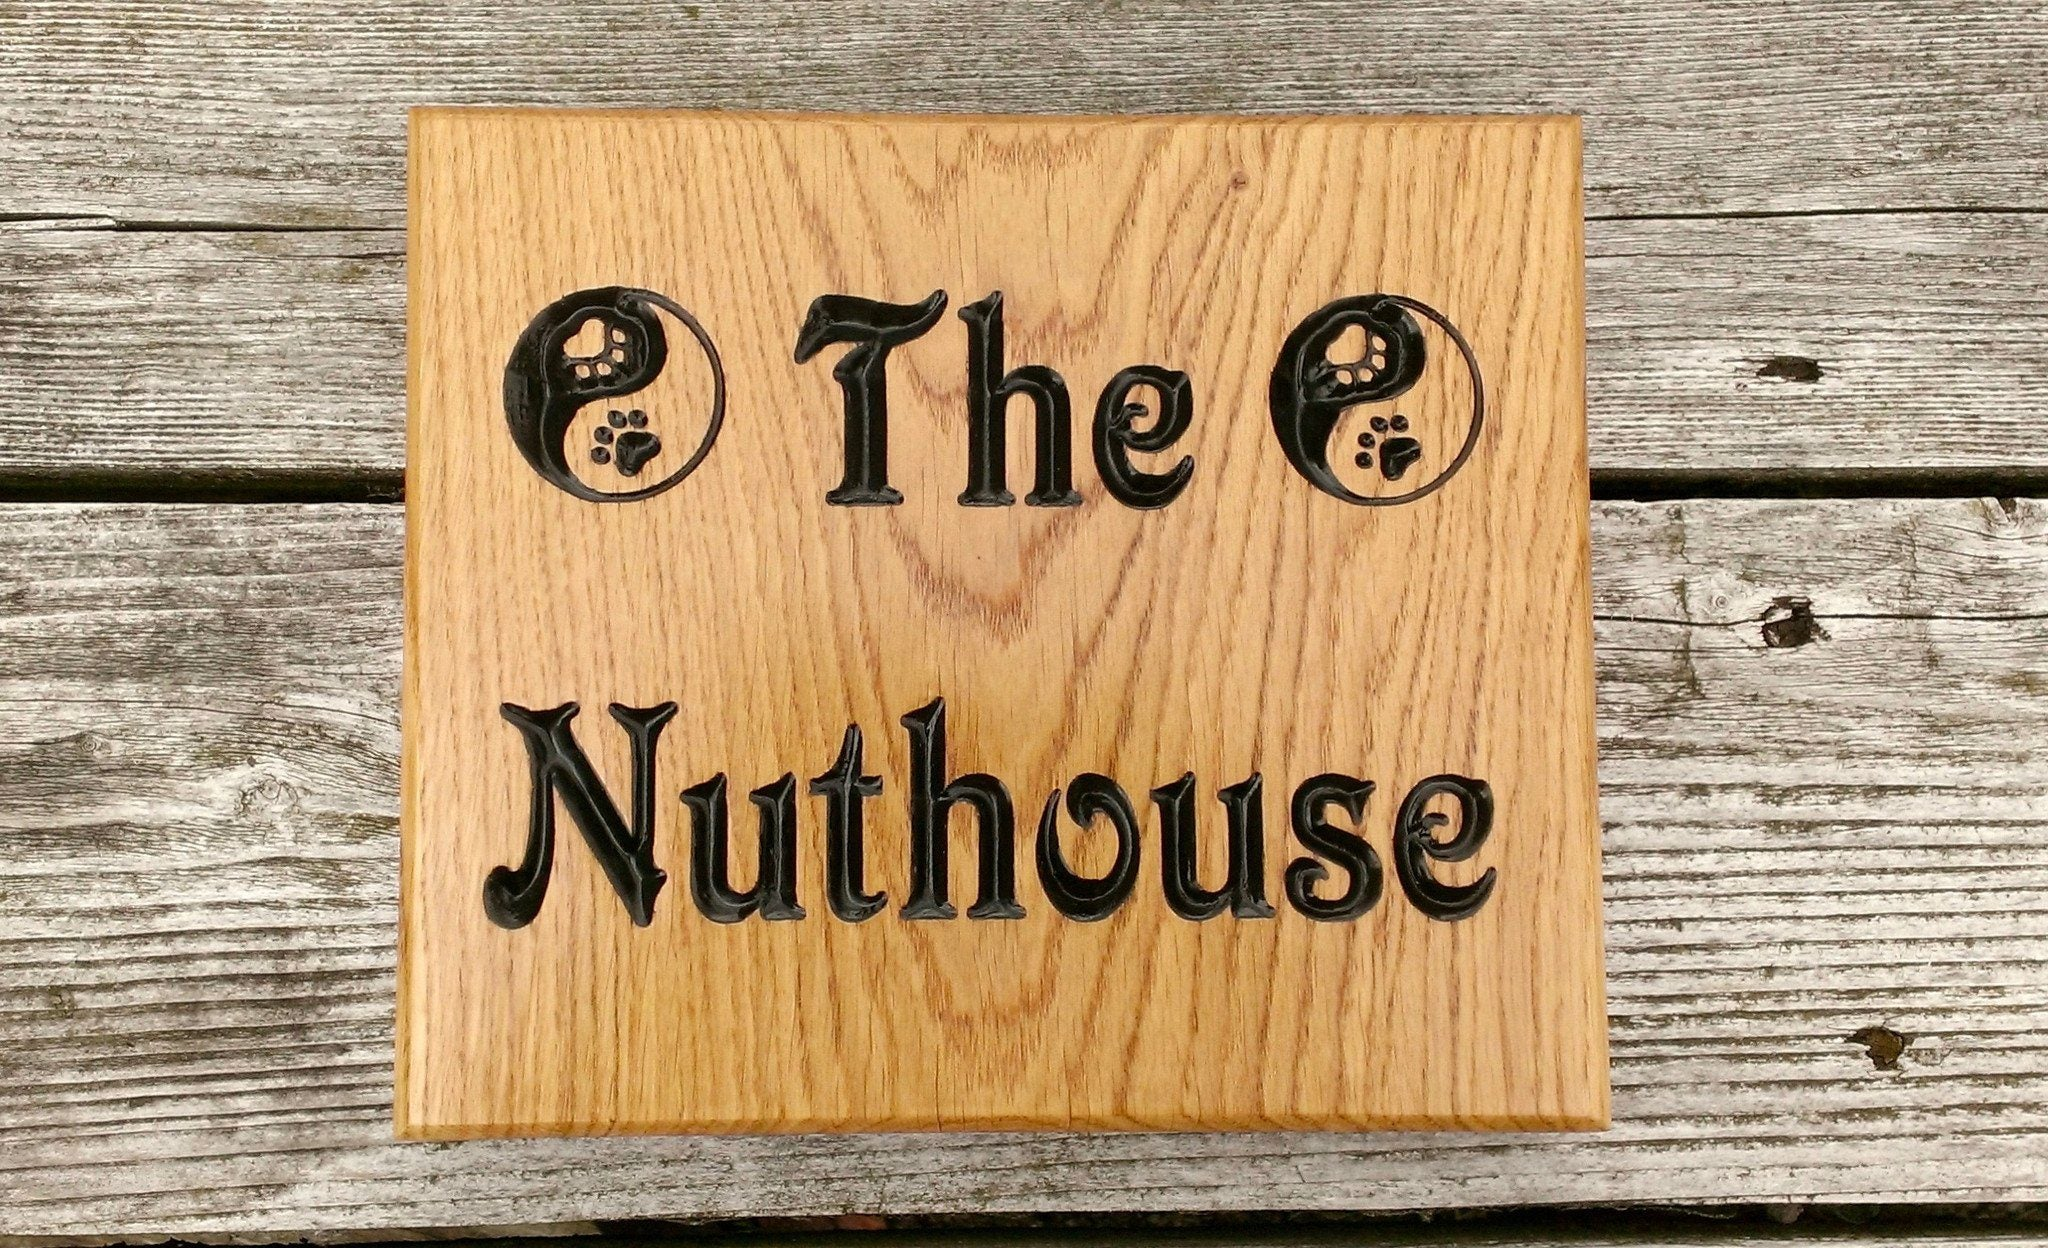 Square house name plate engraved with the nuthouse and two peace signs font victorian